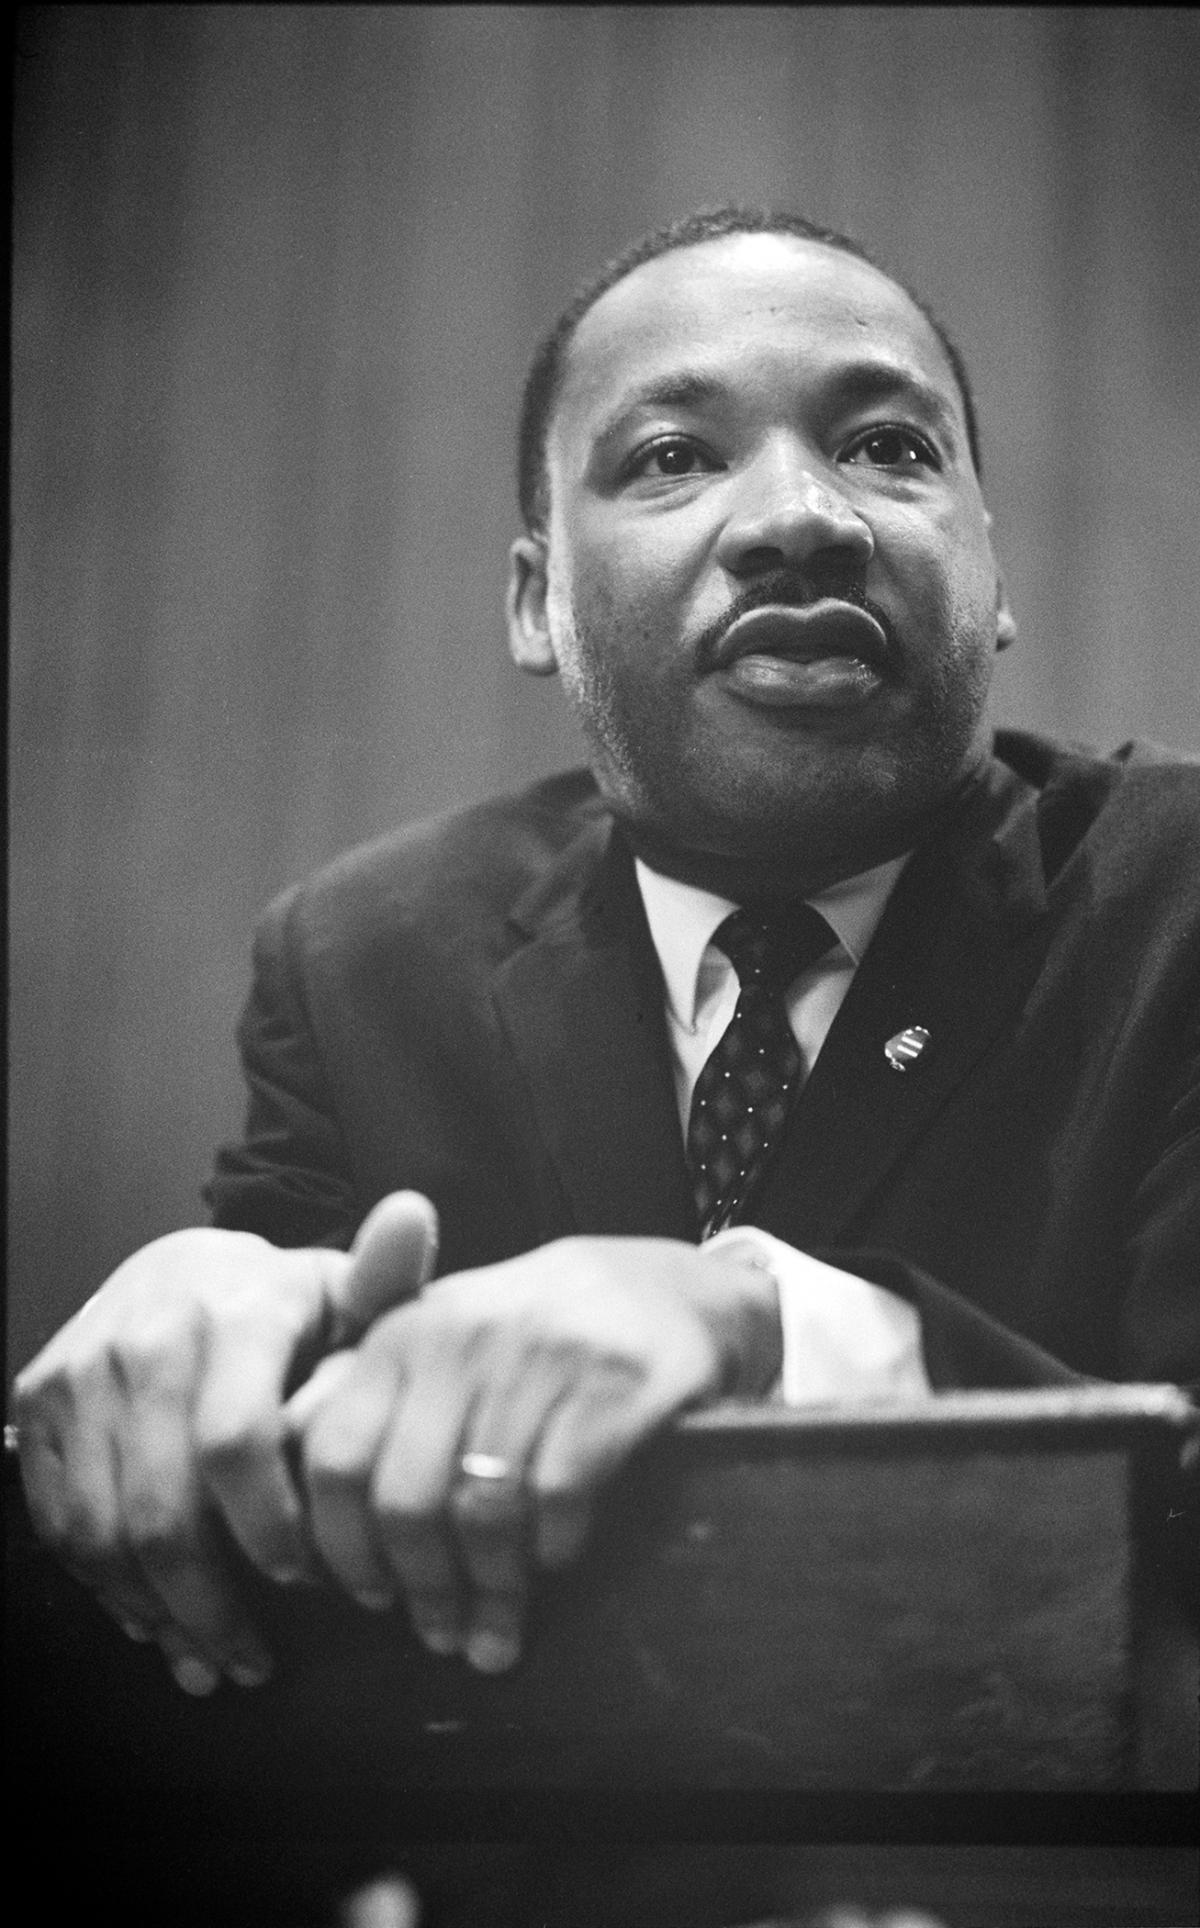 Black and white picture of Martin Luther King Jr. leaning on a podium